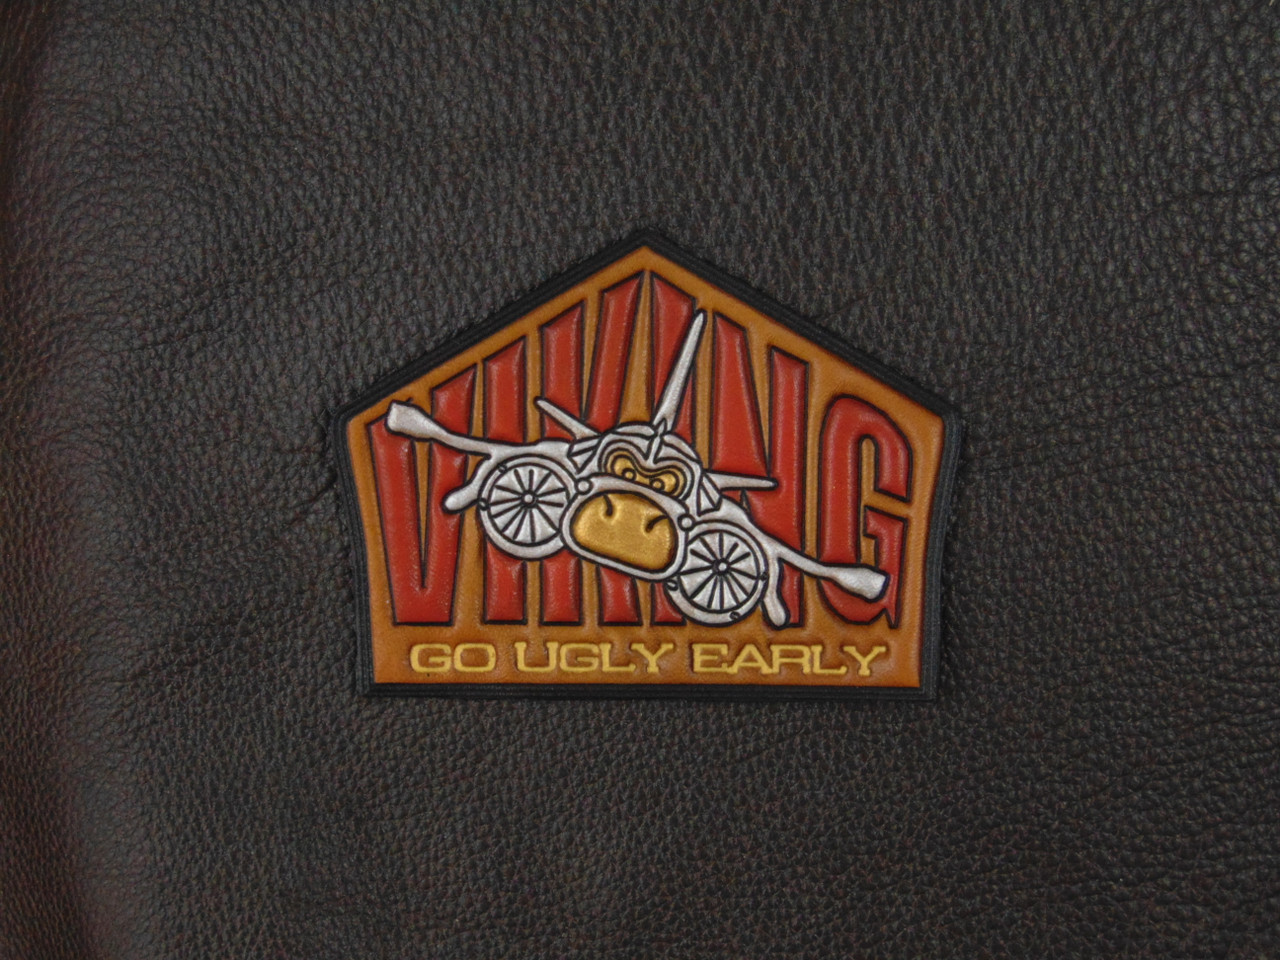 VIKING S-3 GO UGLY EARLY  Classic Embossed